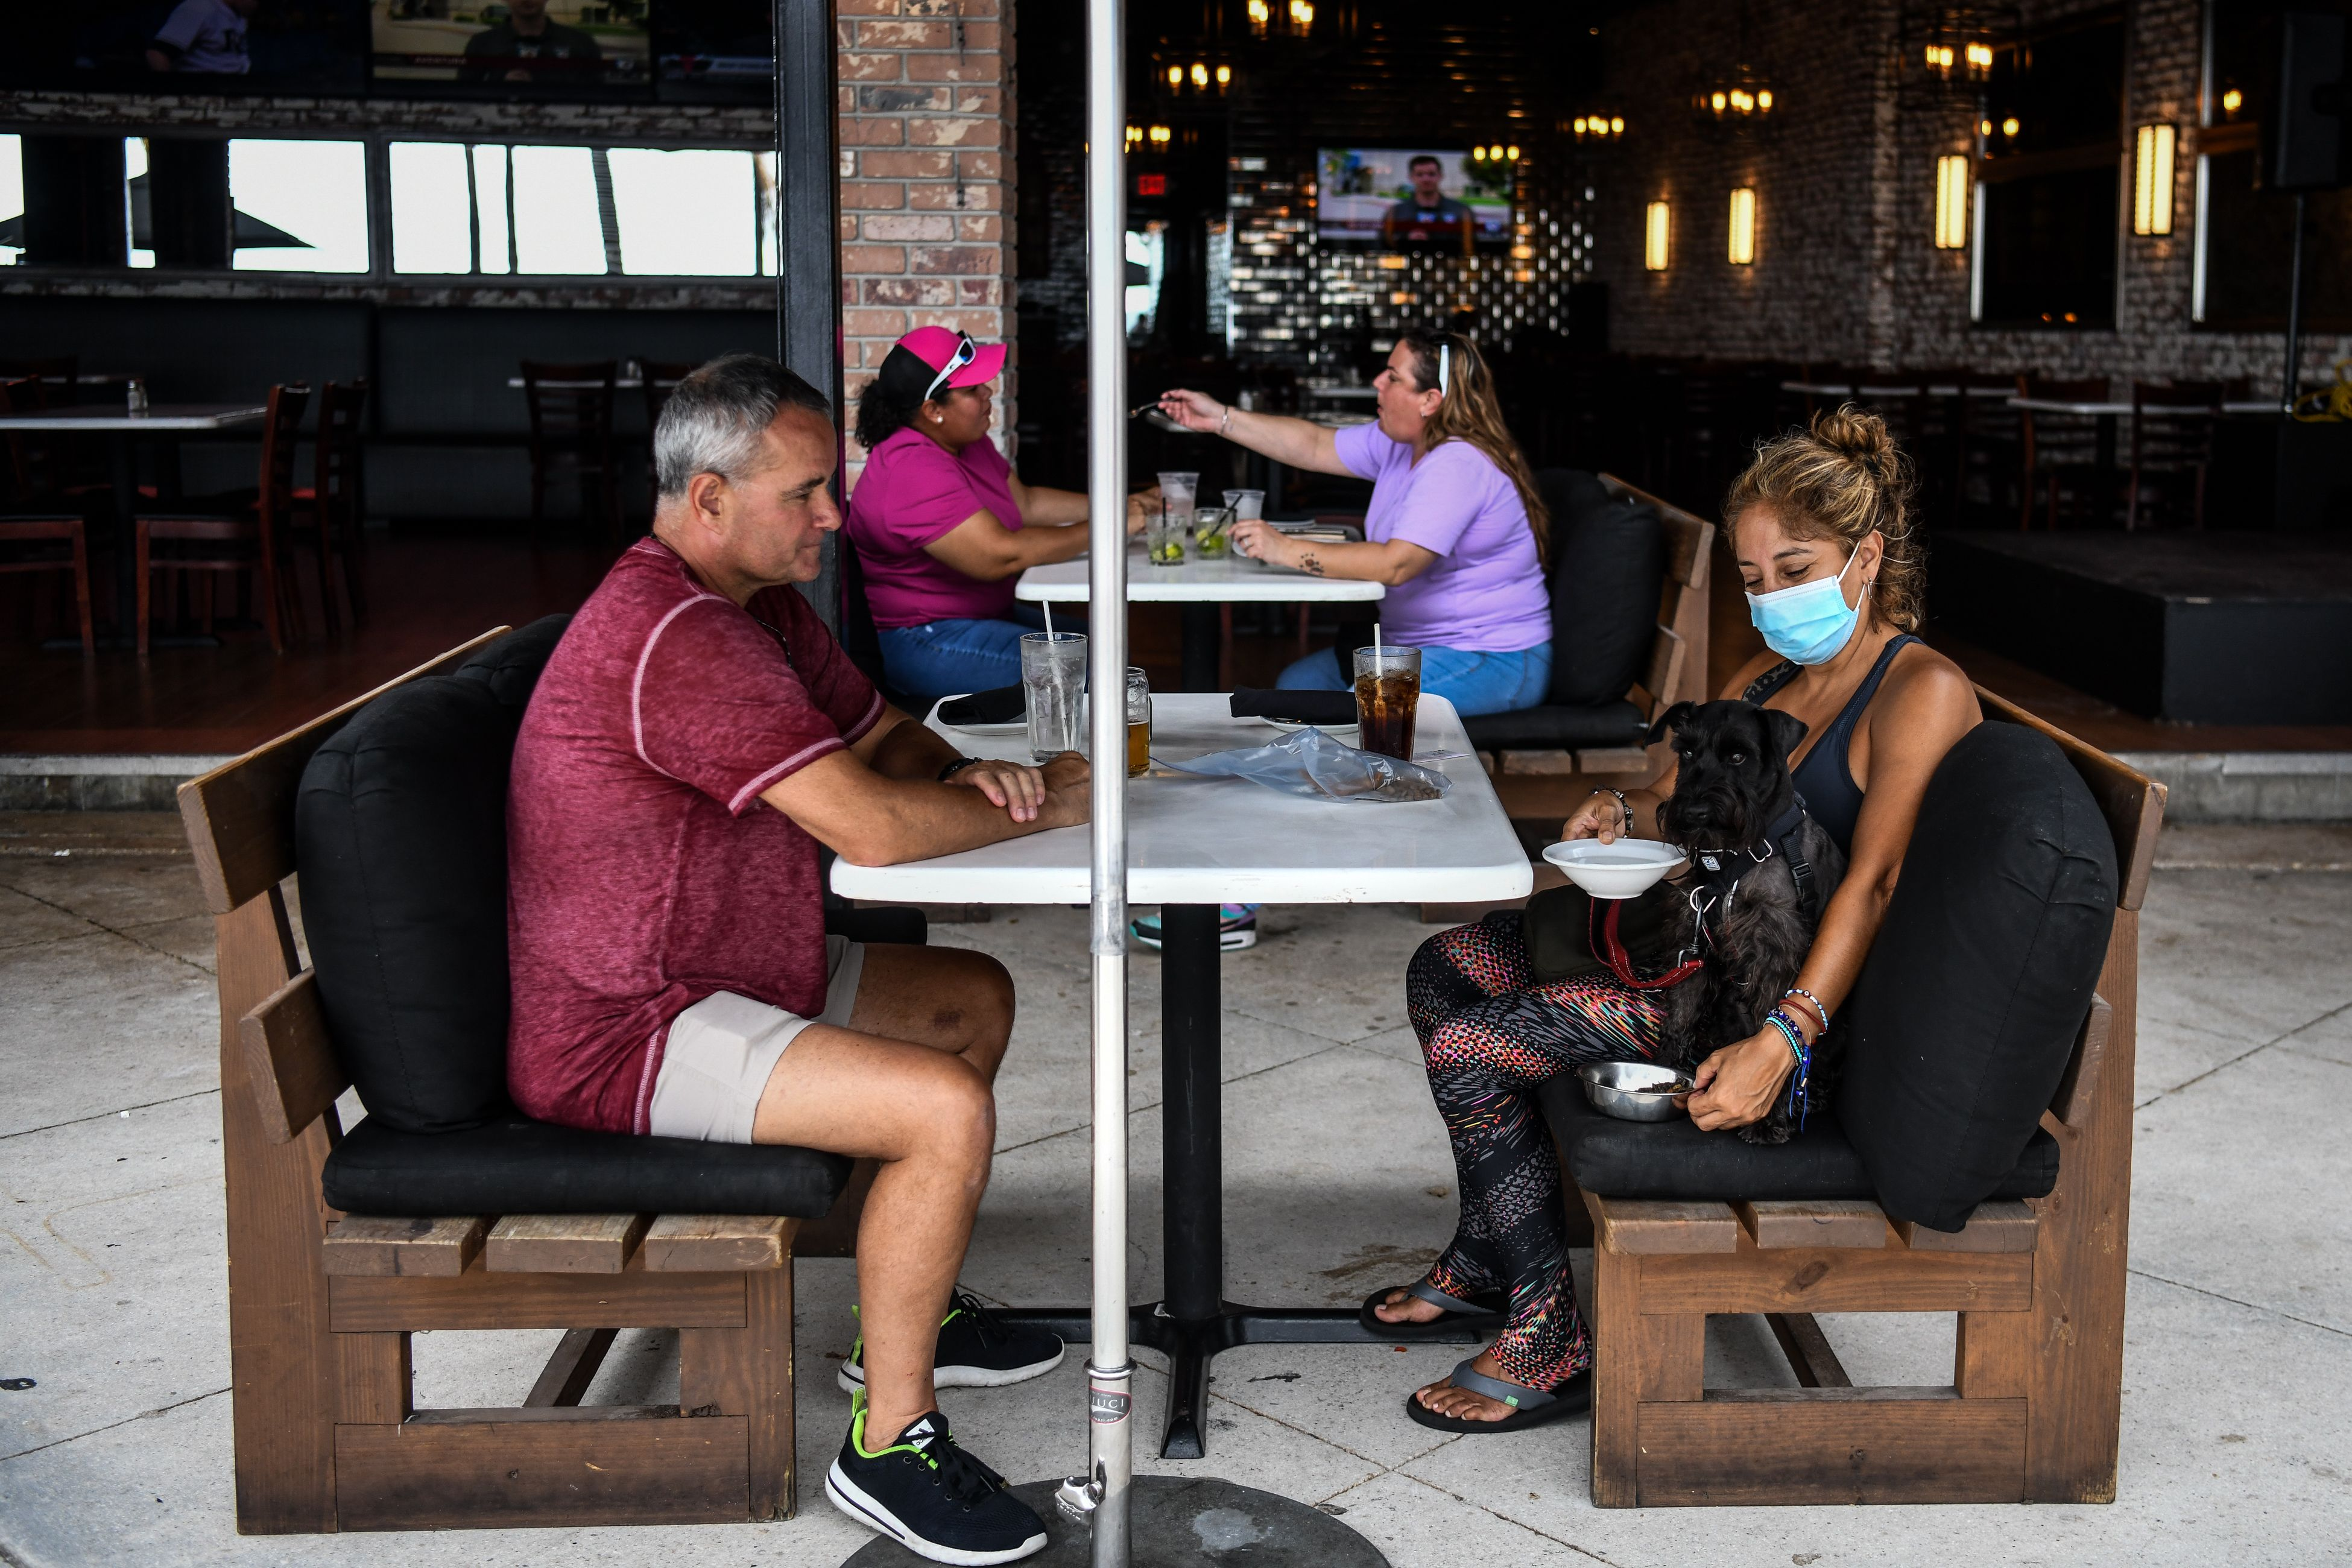 People eat sitting outside of a restaurant on Fort Lauderdale Beach Boulevard in Fort Lauderdale, Florida on May 18, 2020. (Photo by CHANDAN KHANNA/AFP via Getty Images)